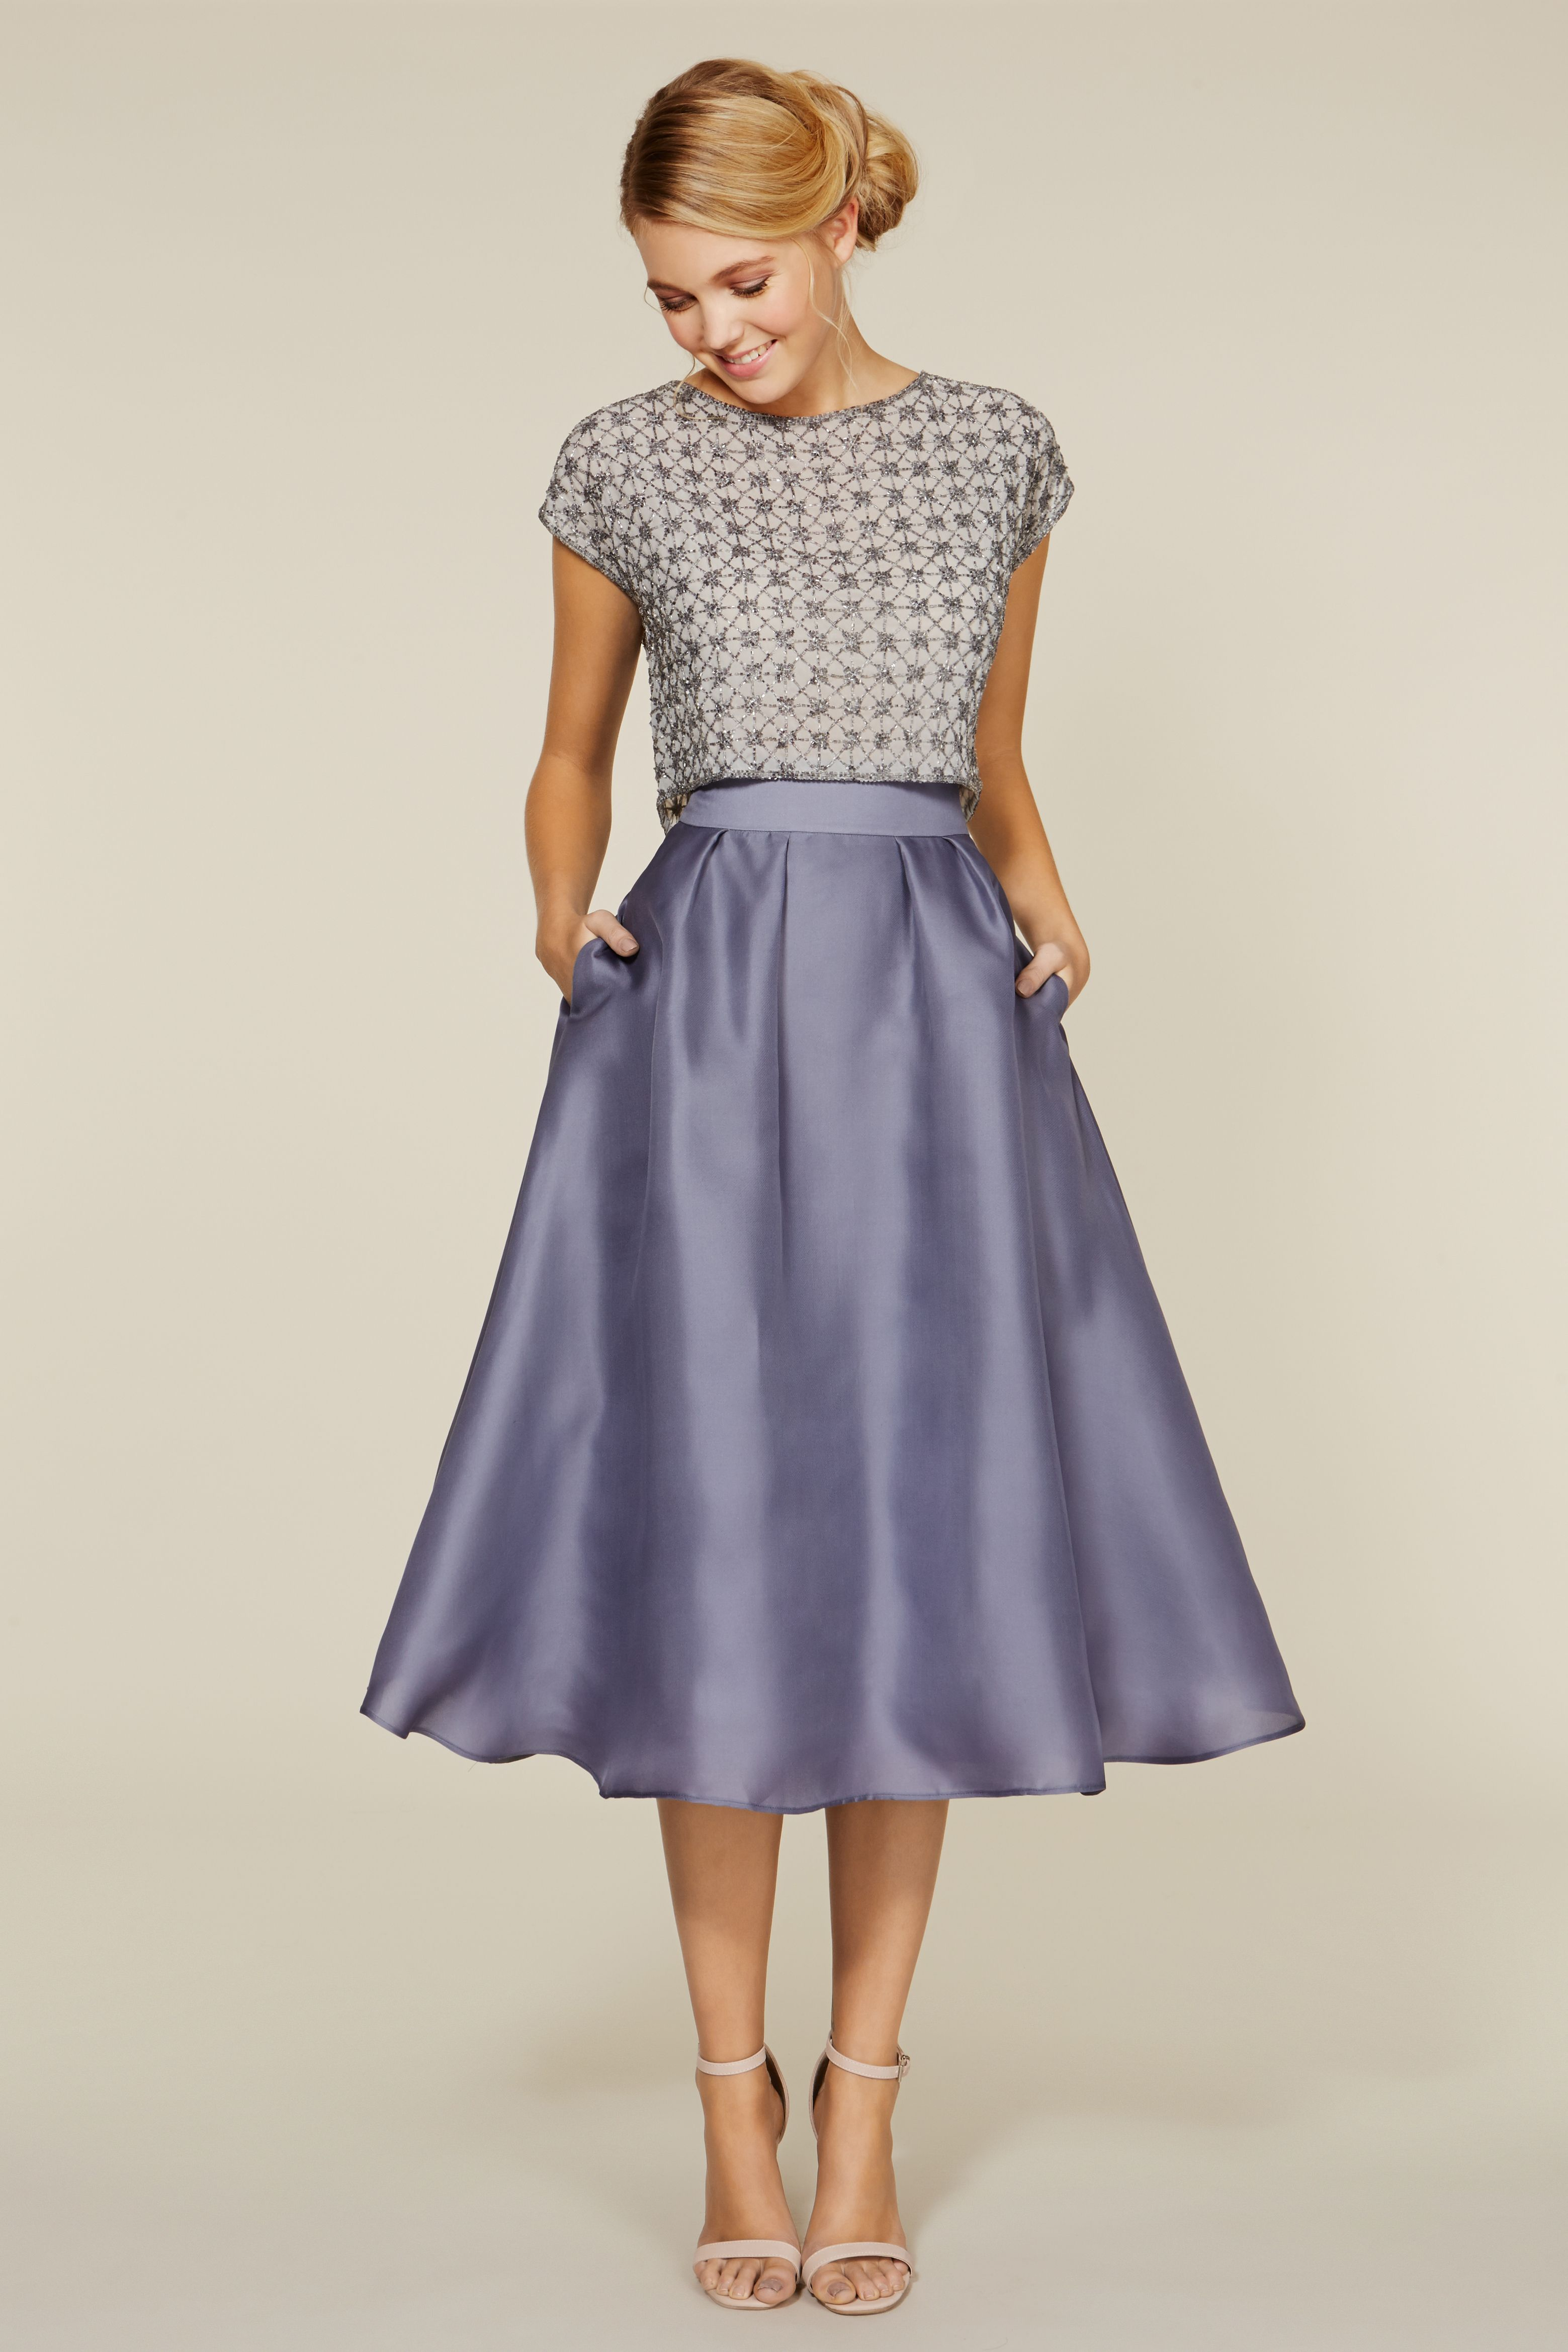 6c5b784bc7e5 Tessa Top (£85) and Tessa Skirt (£125) | ROPA a la moda ...